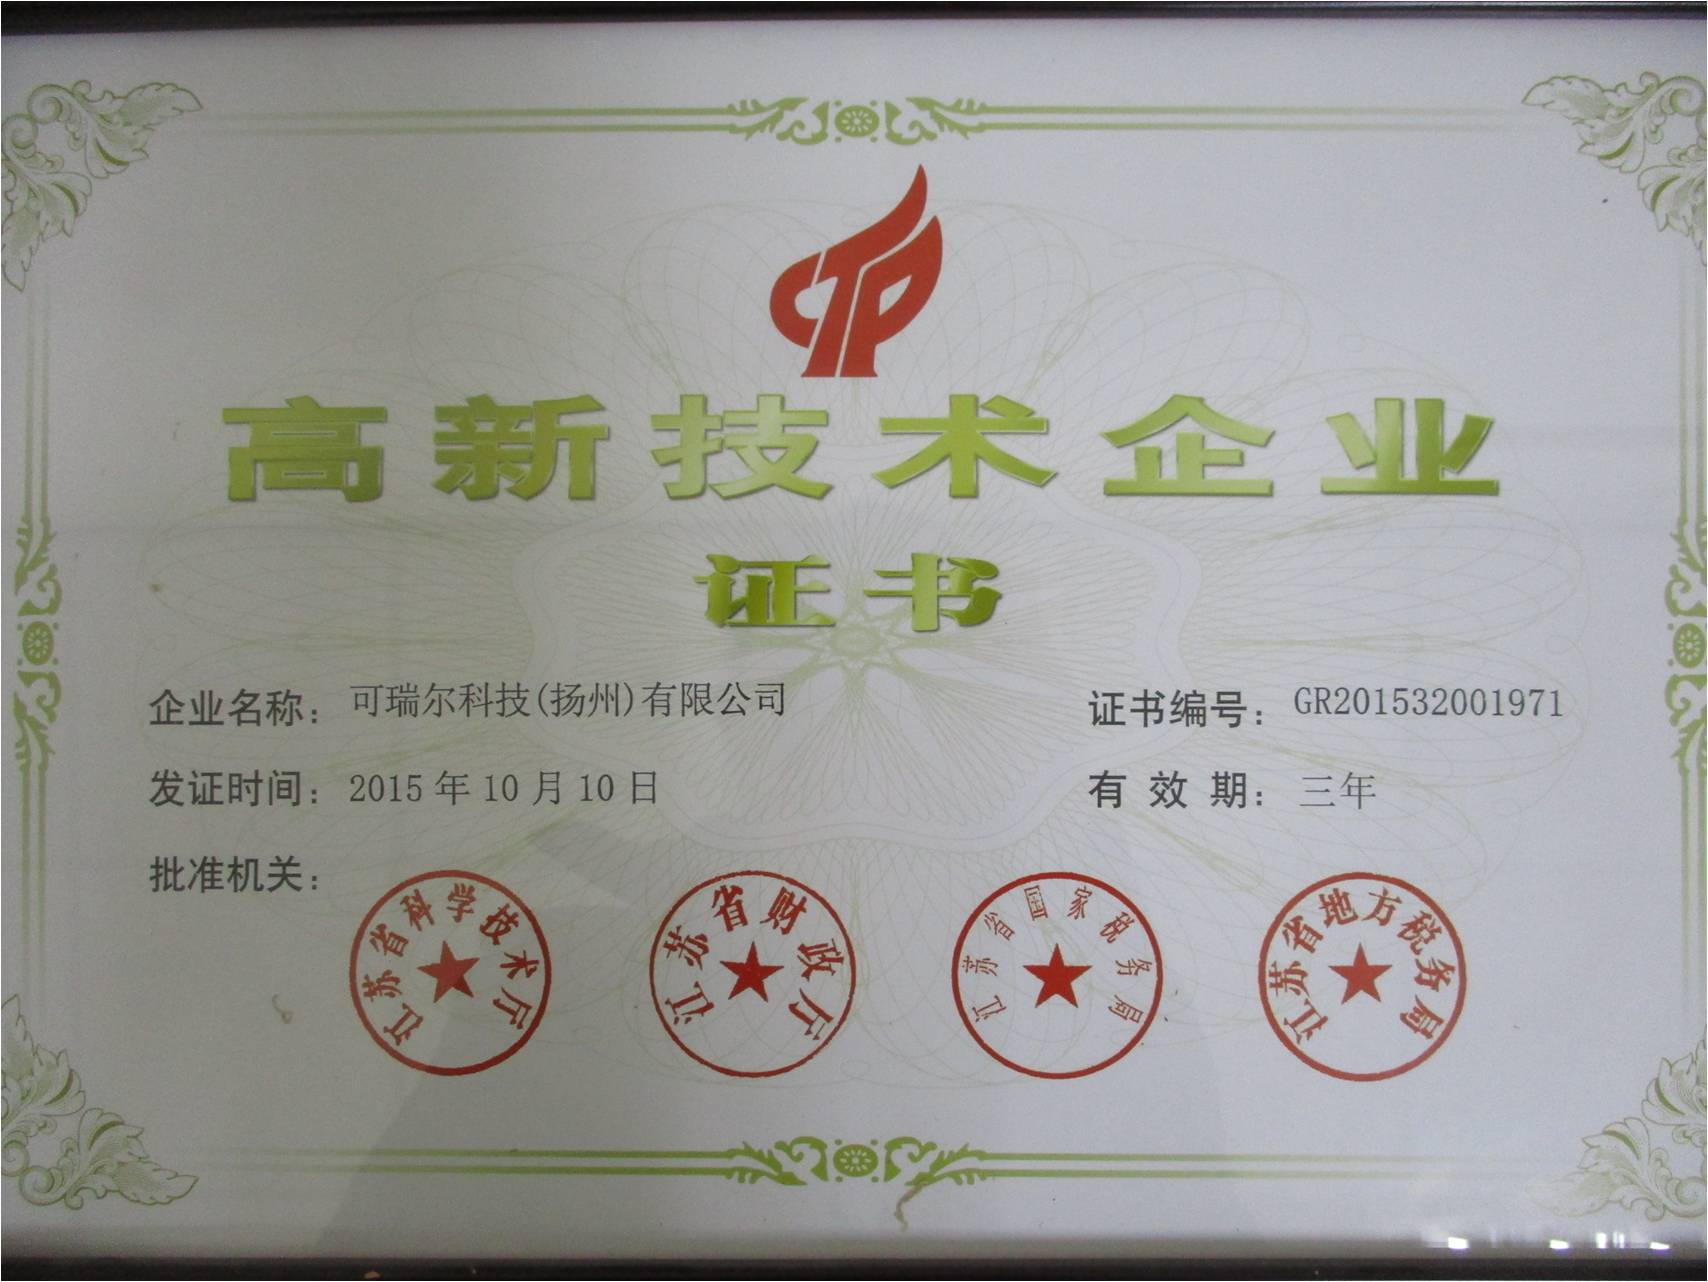 High Technical Company Certificate